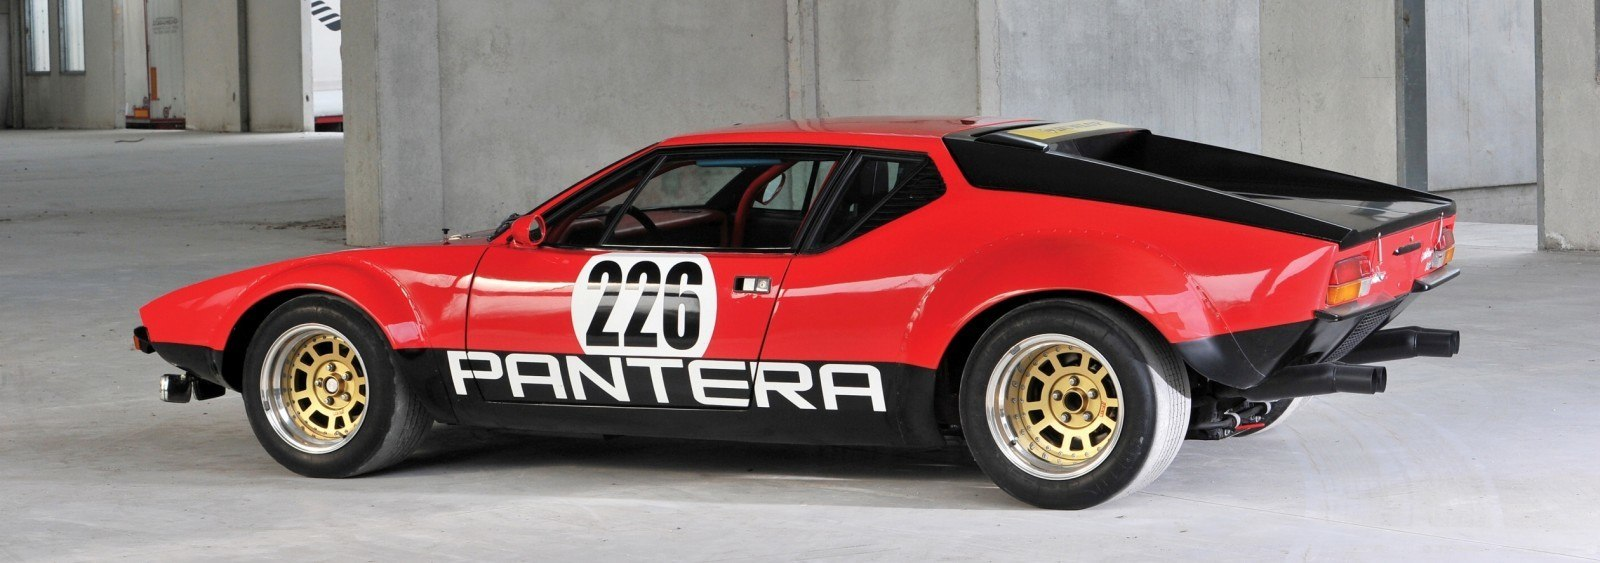 RM Auctions Monaco 2014 Highlights - 1973 DeTomaso Pantera Rally Special Is Low-Brow Heaven 2